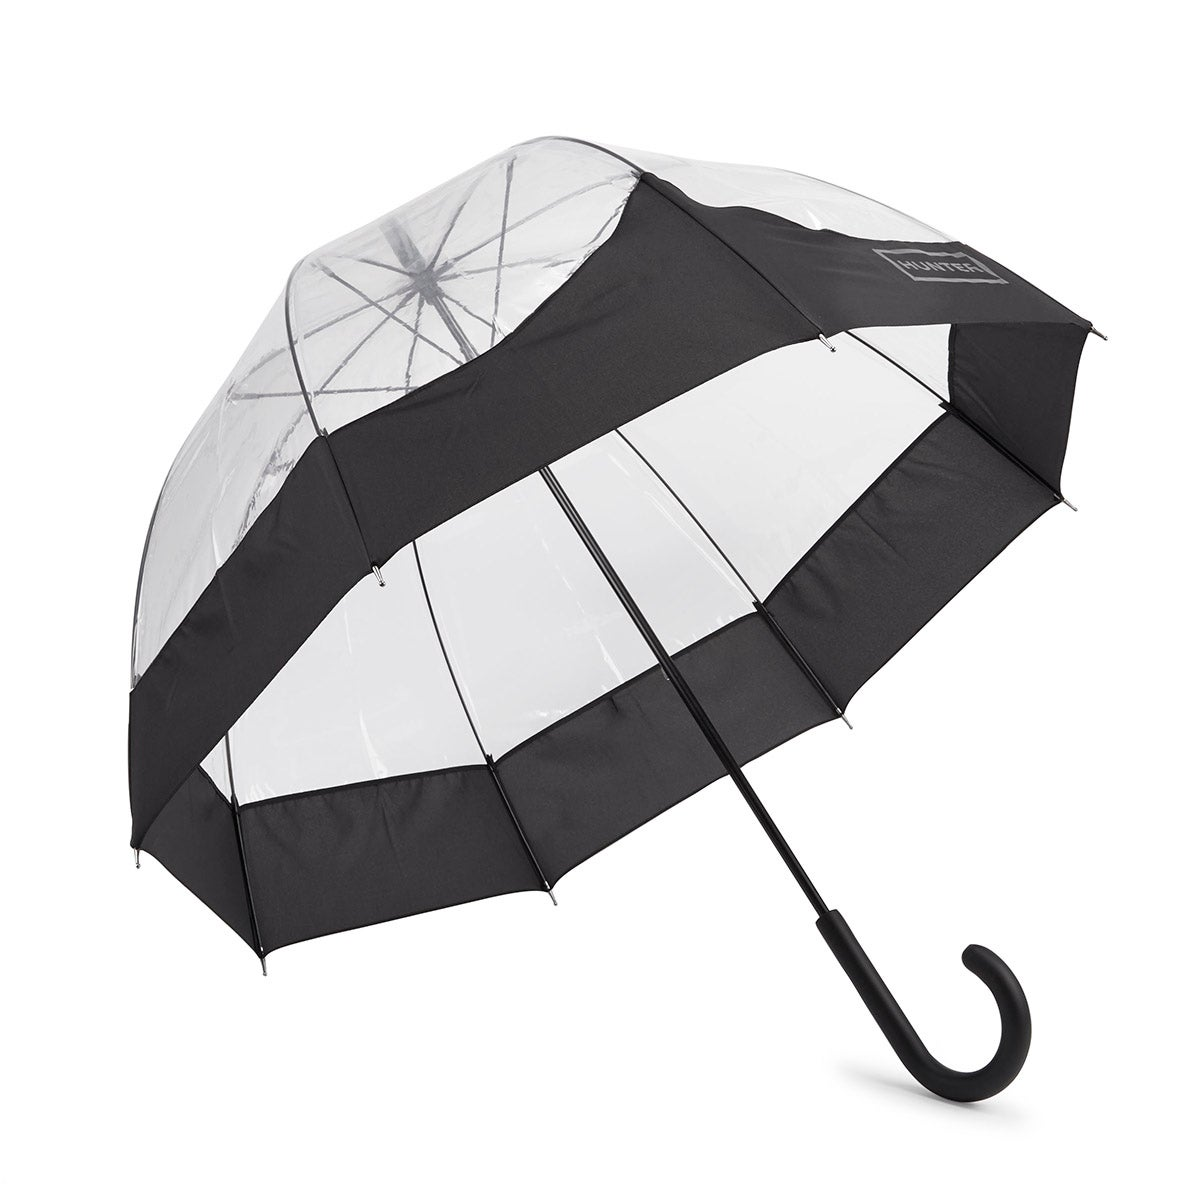 Lds Orig Moustache Bubble blk umbrella